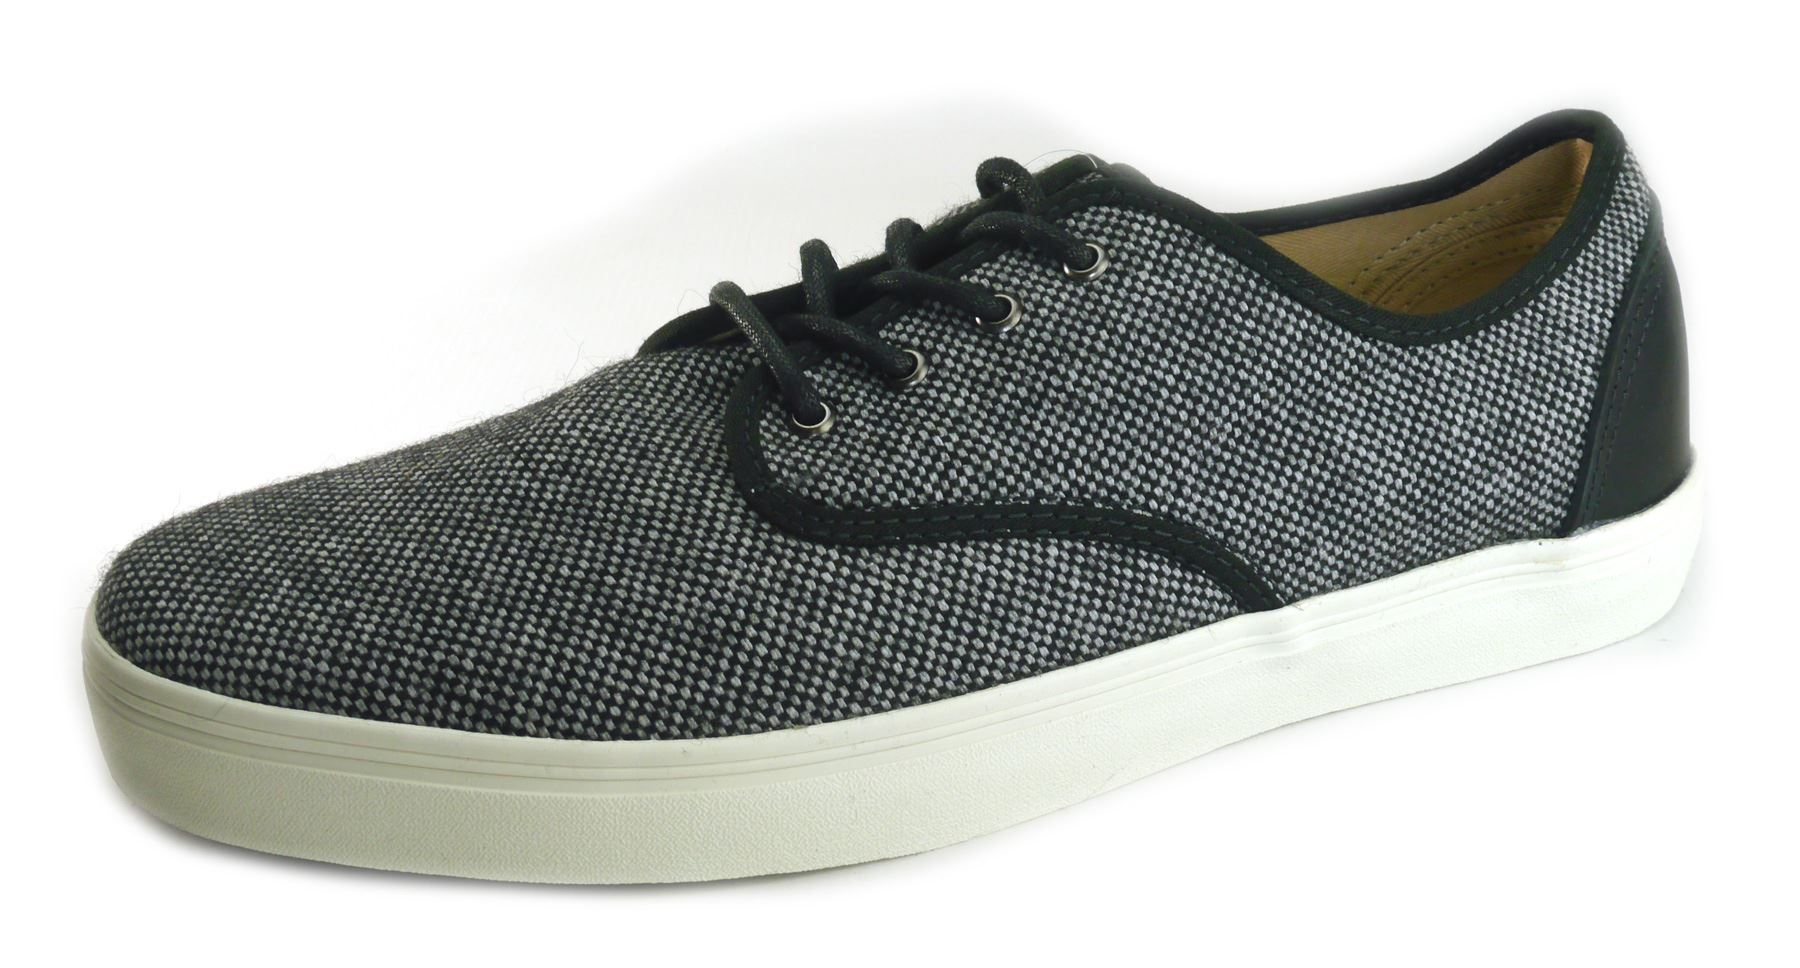 Vans AUTHENTIC Tweed da Uomo Tela Lacci casial Pompe Scarpe